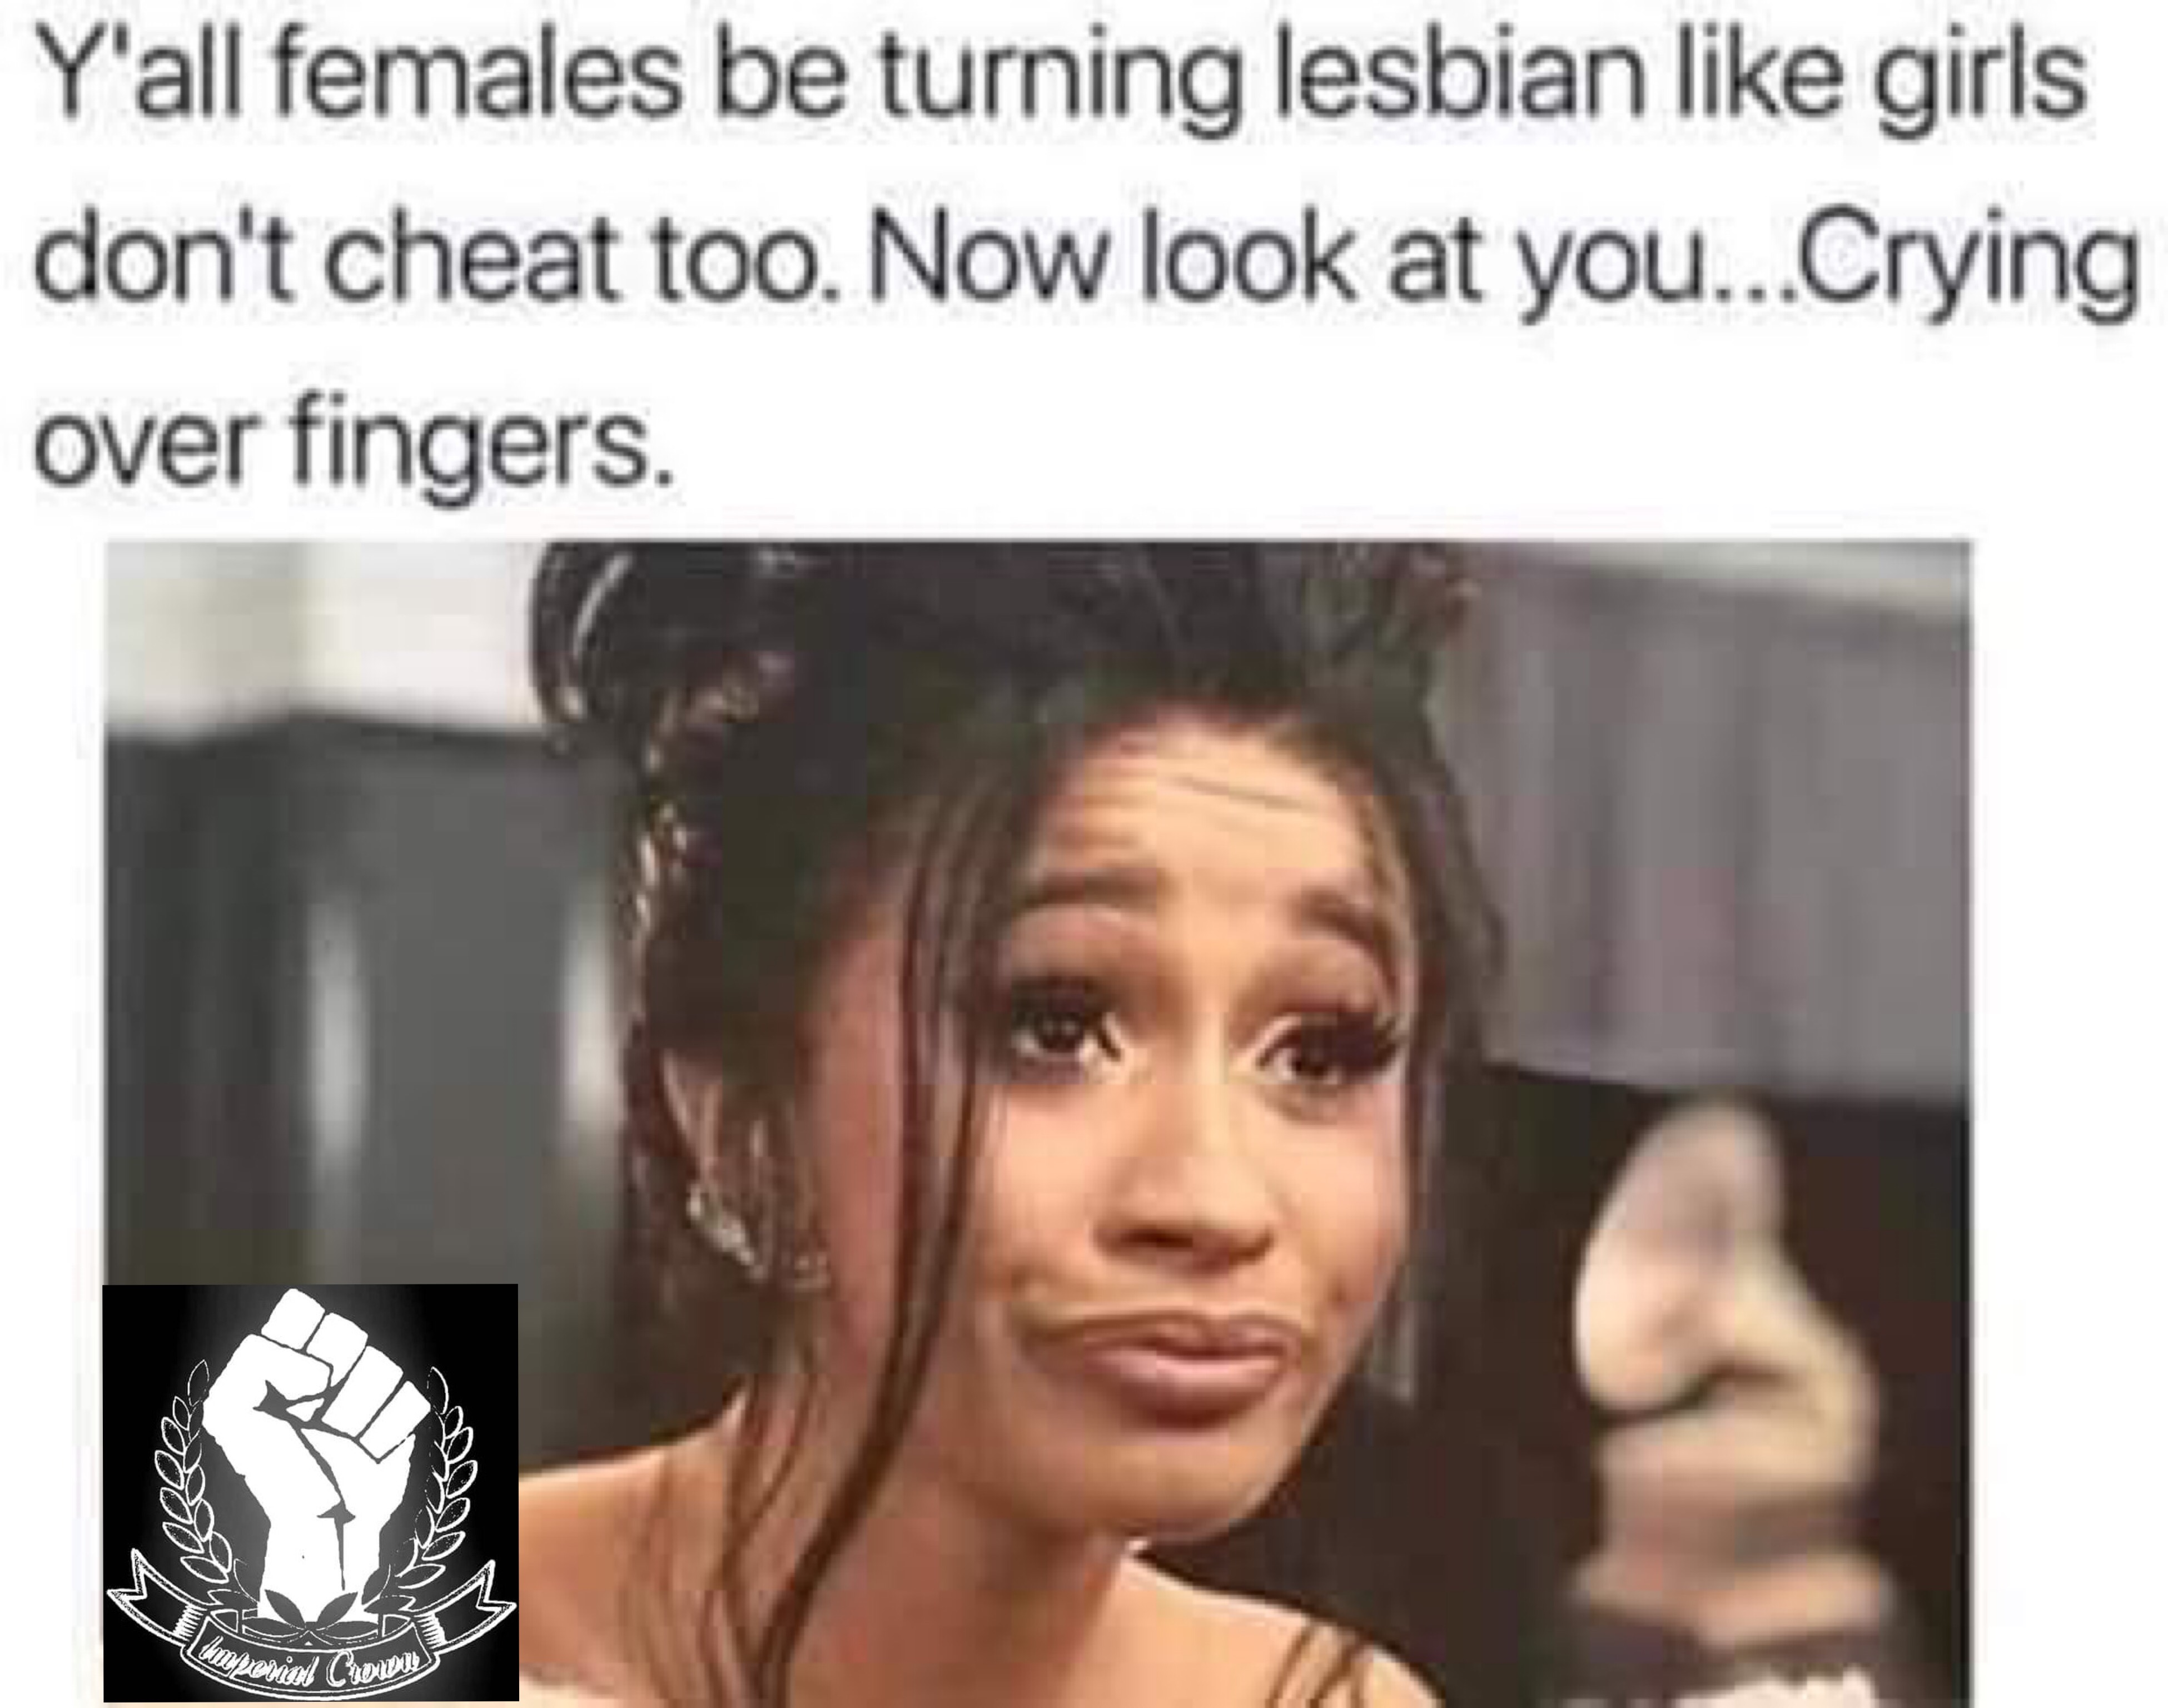 Y'all be turning lesbian like girls don't cheat too…